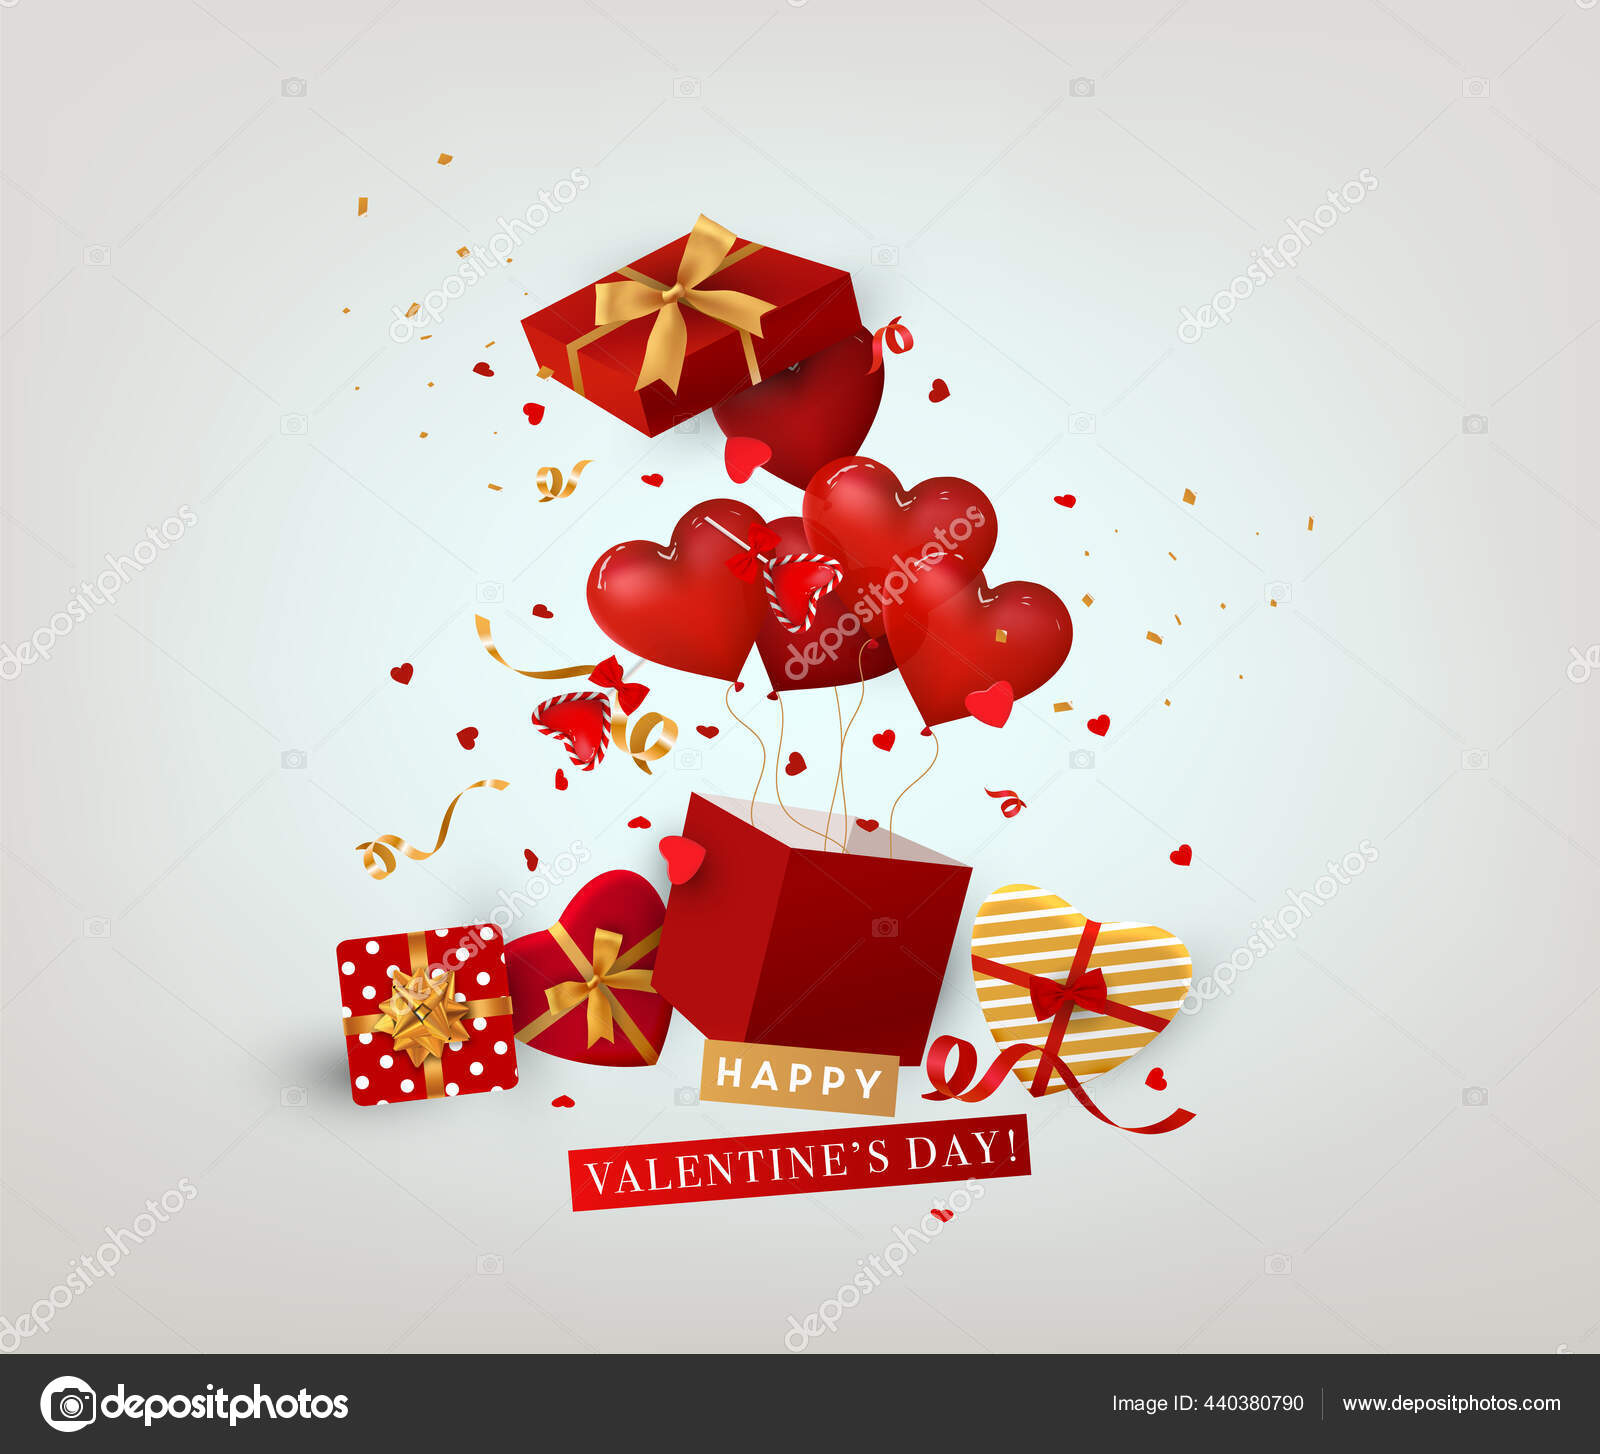 Vektor Happy Valentine Day Illustration Kartu Ucapan Romantis Dengan Balon Stok Vektor C Vikasuperstar 440380790